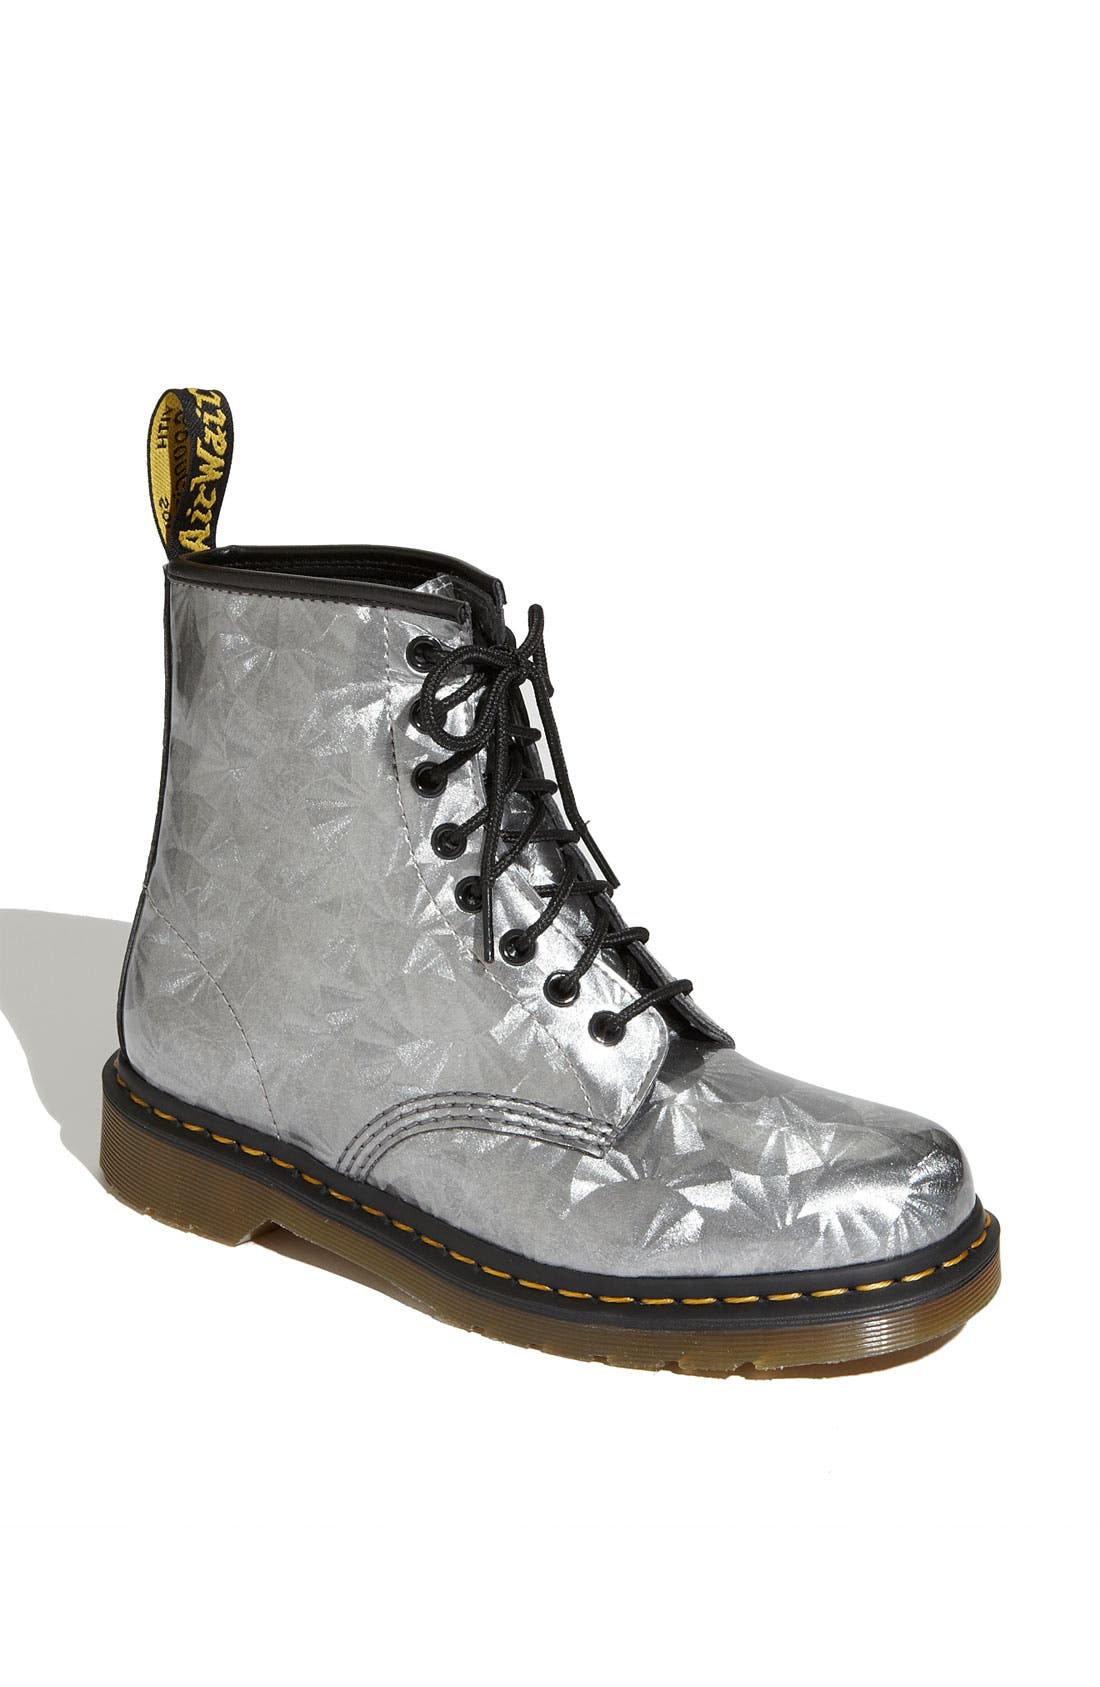 Main Image - Dr. Martens 'Jewel' Boot